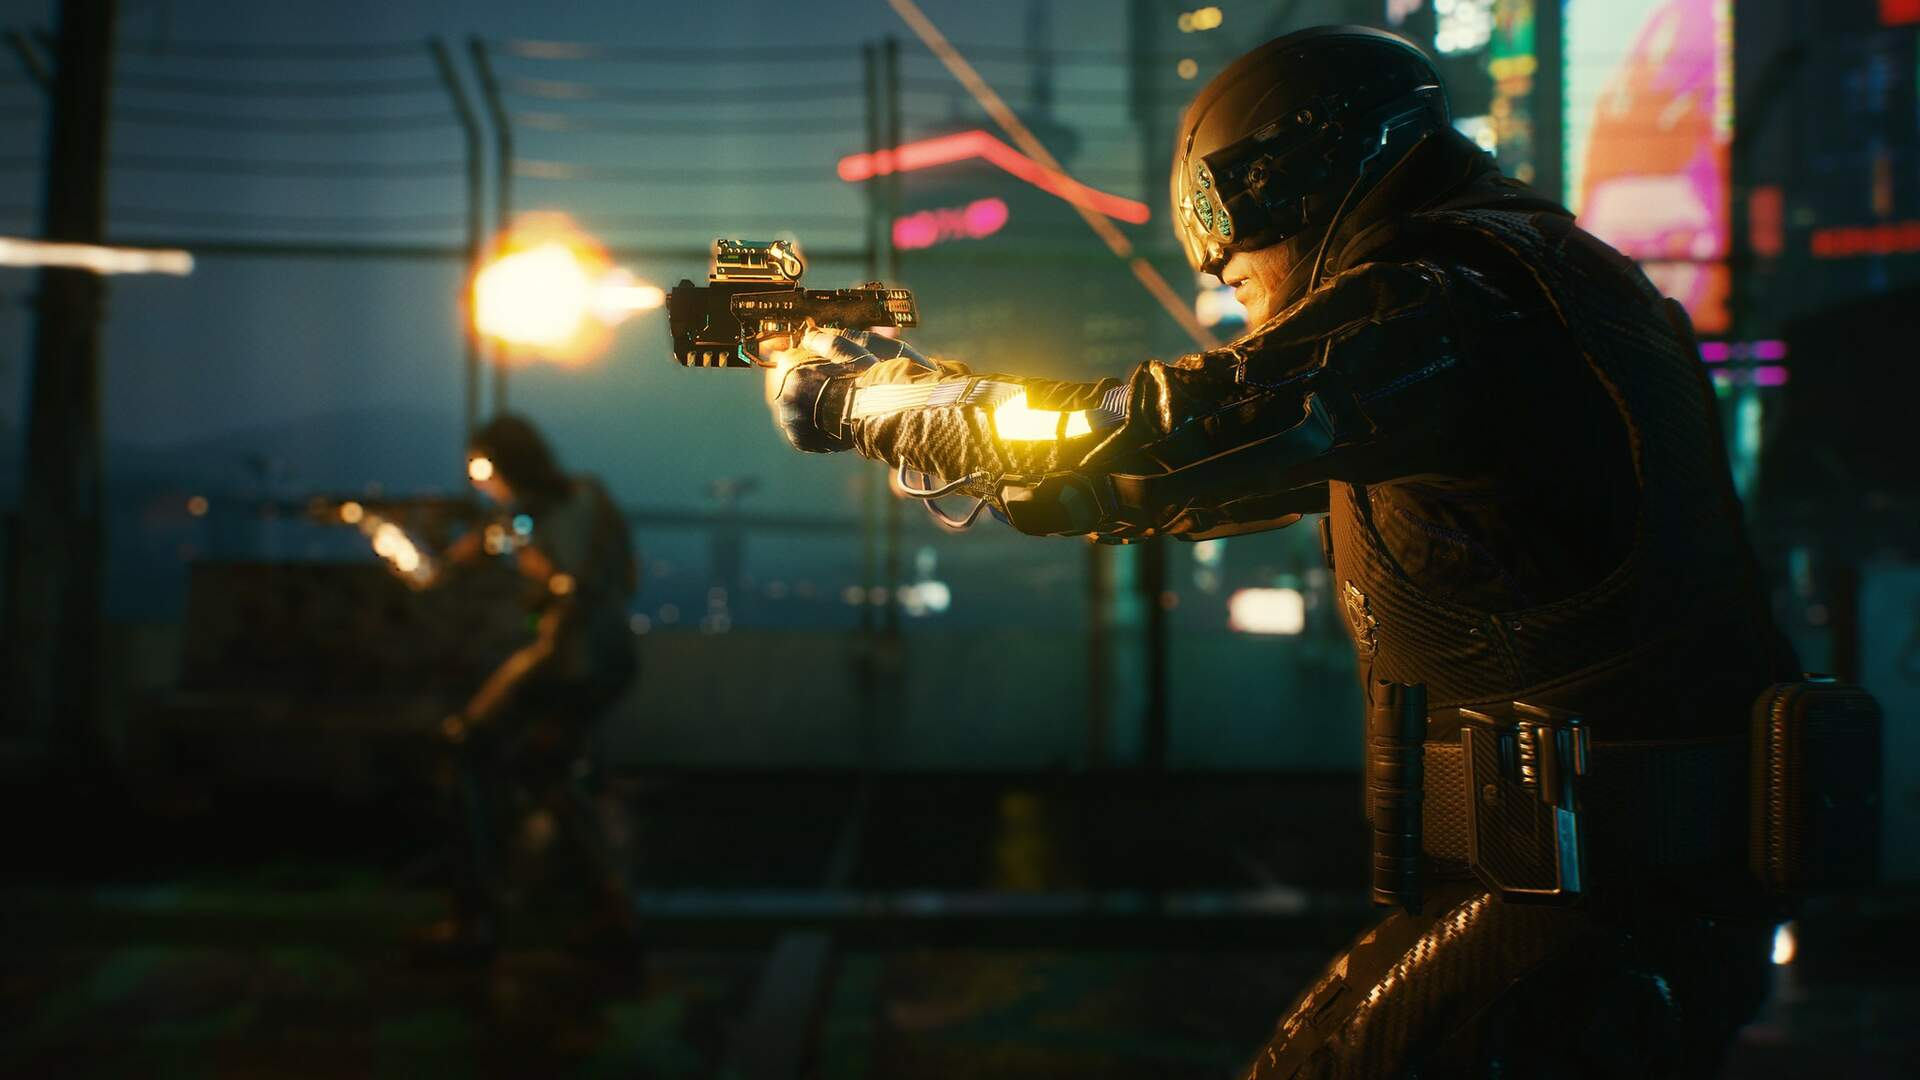 Cyberpunk 2077 Will Receive More DLC Than The Witcher 3